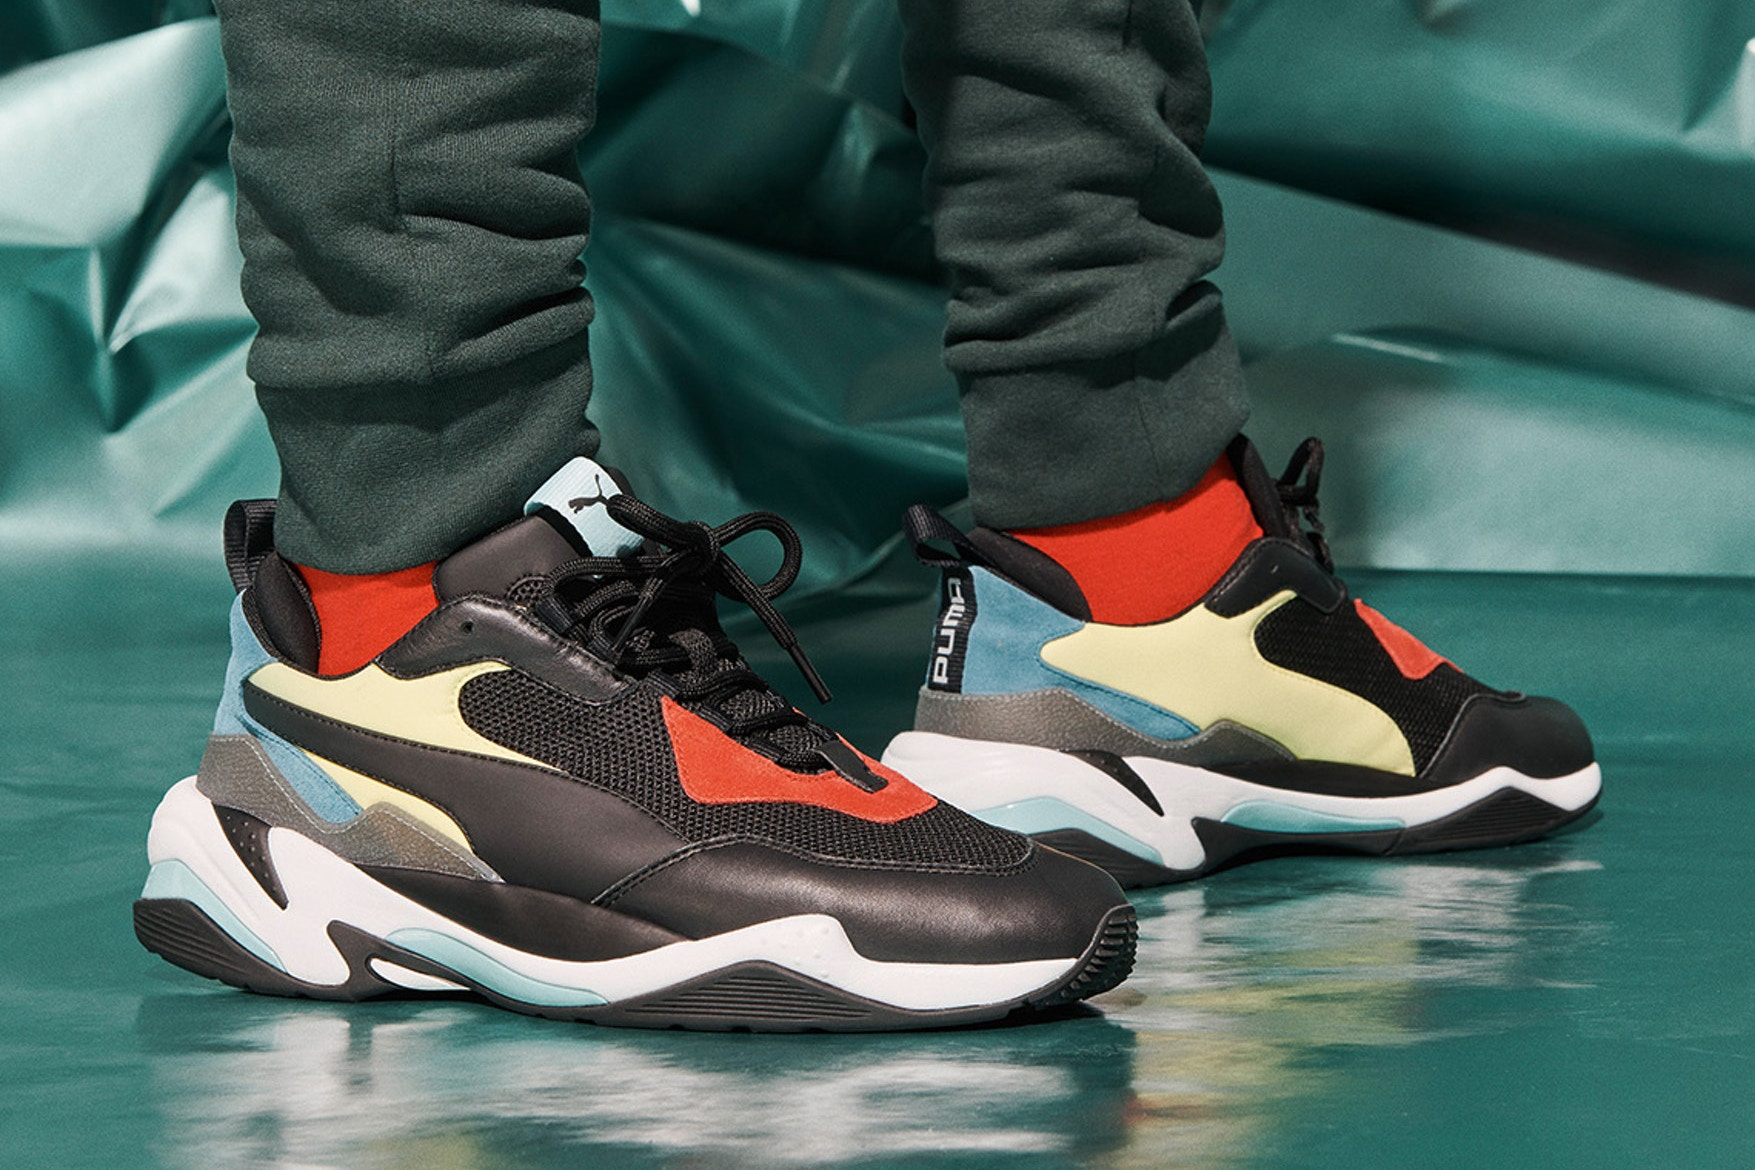 puma-thunder-spectra-official-release-2